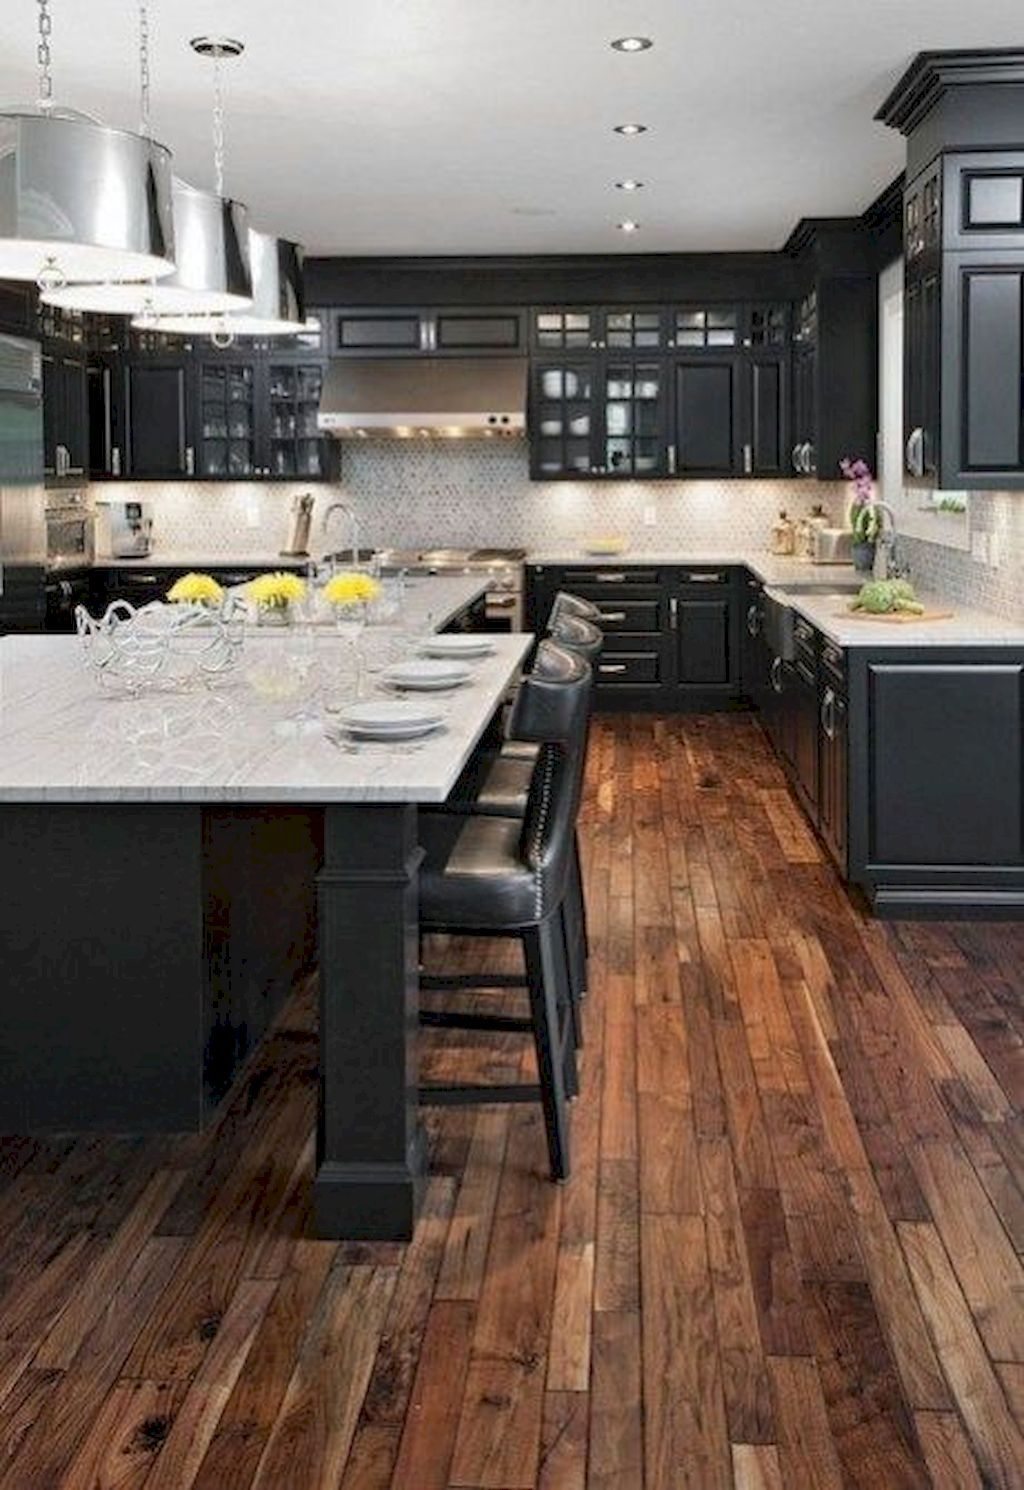 65 farmhouse kitchen backsplash design ideas rustic farmhouse kitchen home decor kitchen on farmhouse kitchen backsplash id=76318